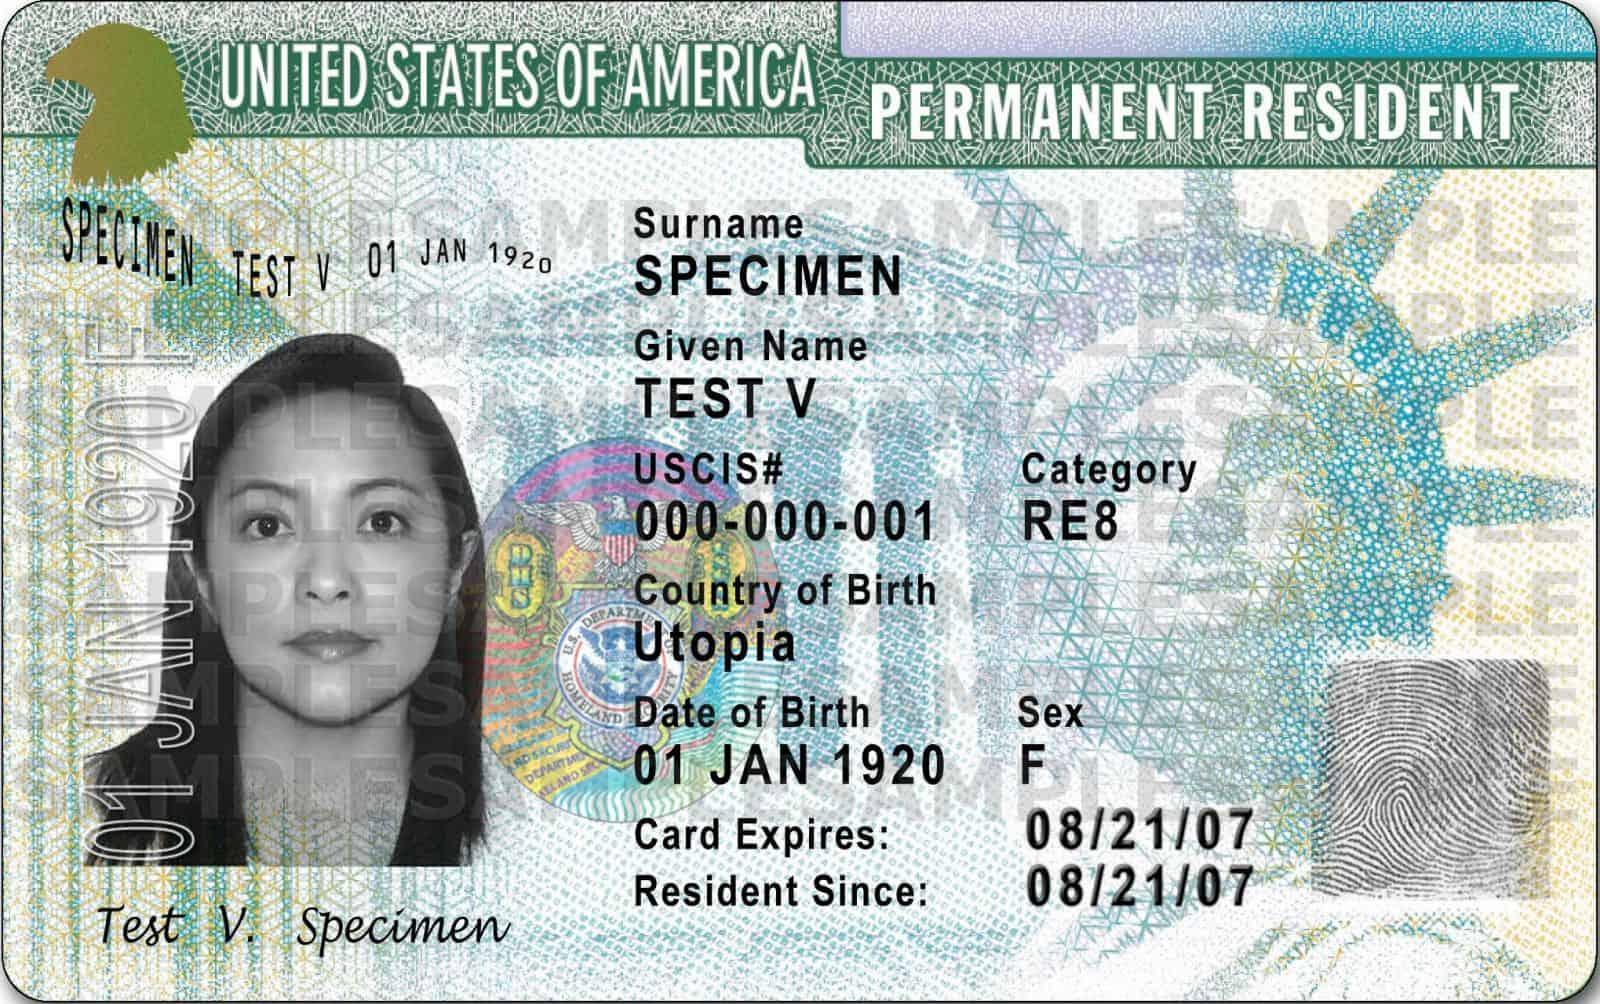 Lewis Law Immigration Attorneys - Get Help with Green Card